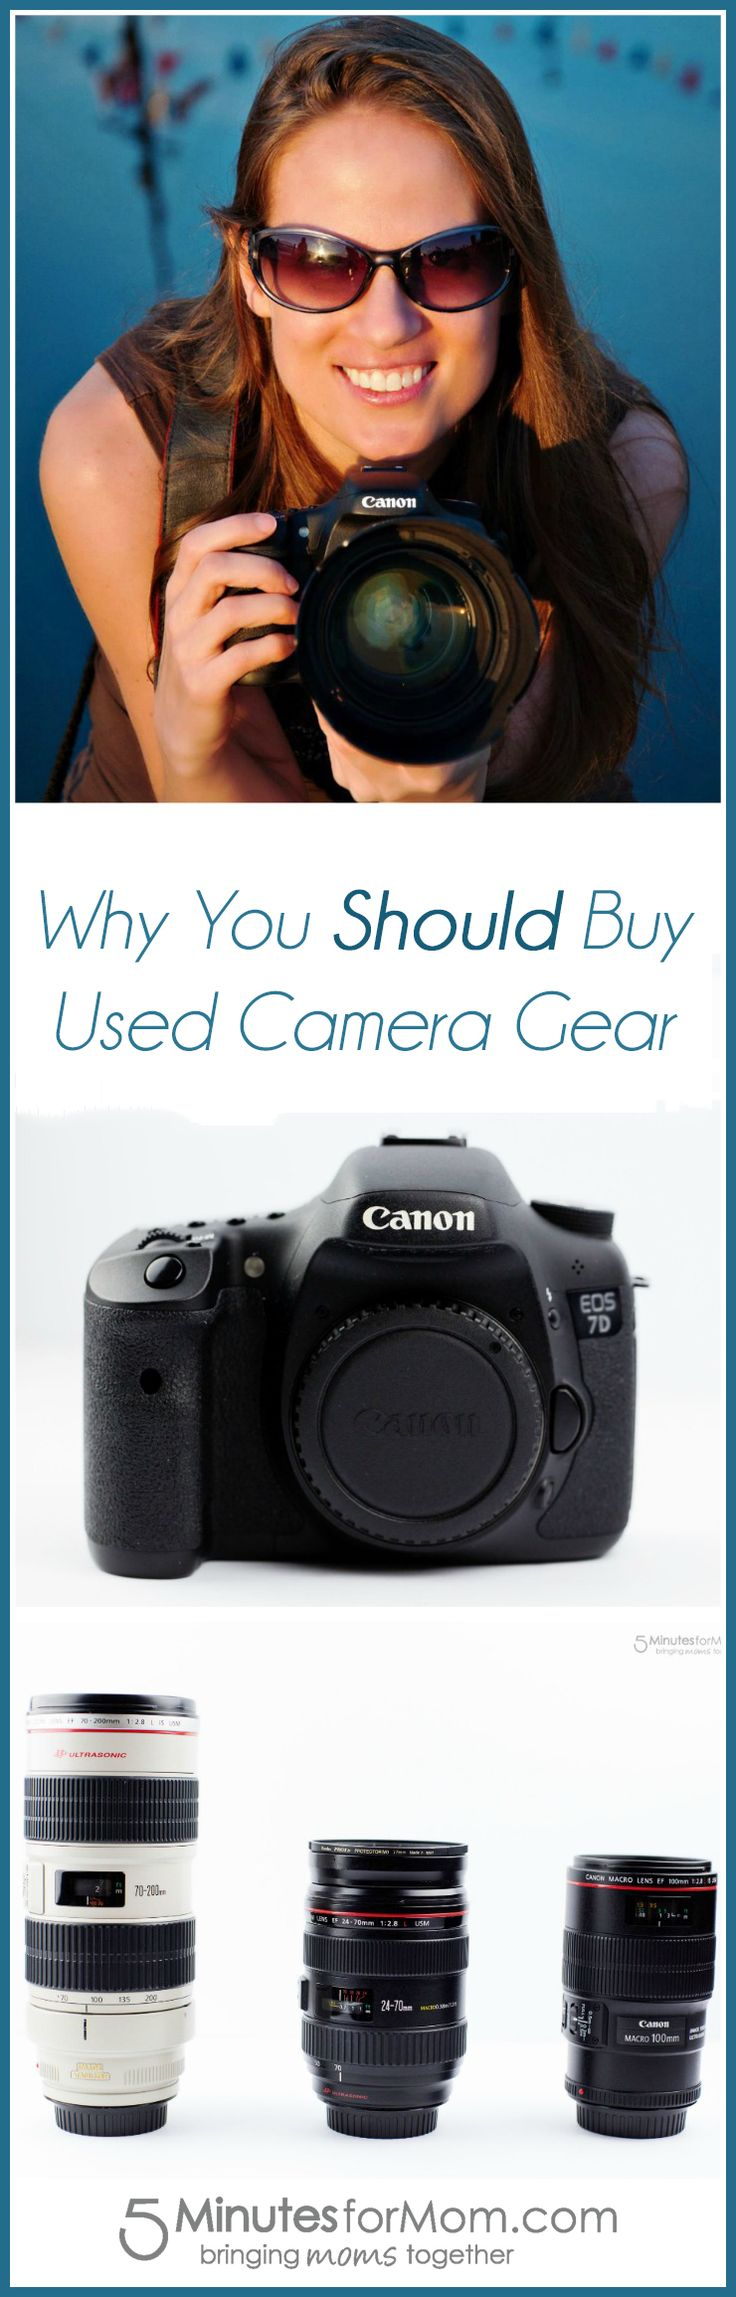 We have an EXCLUSIVE 20% discount code for the first 10 people to @KEHCamera!  Plus Janice has GREAT TIPS on Why you SHOULD buy used camera gear! (sponsored)